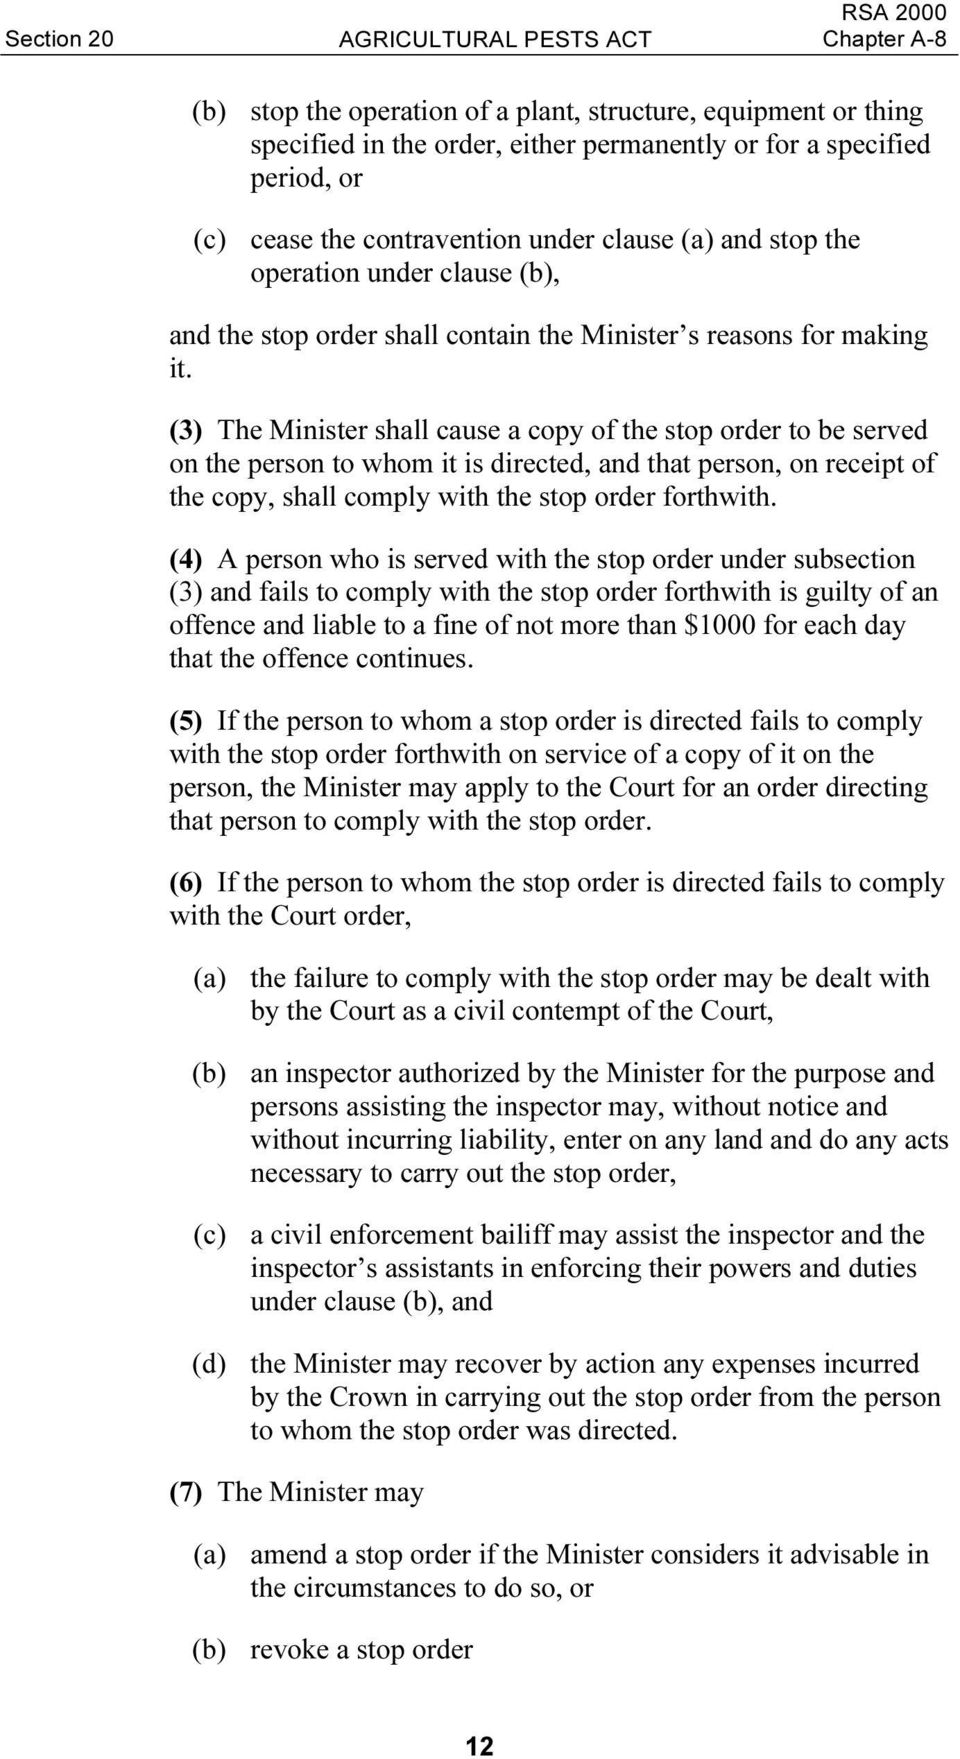 (3) The Minister shall cause a copy of the stop order to be served on the person to whom it is directed, and that person, on receipt of the copy, shall comply with the stop order forthwith.